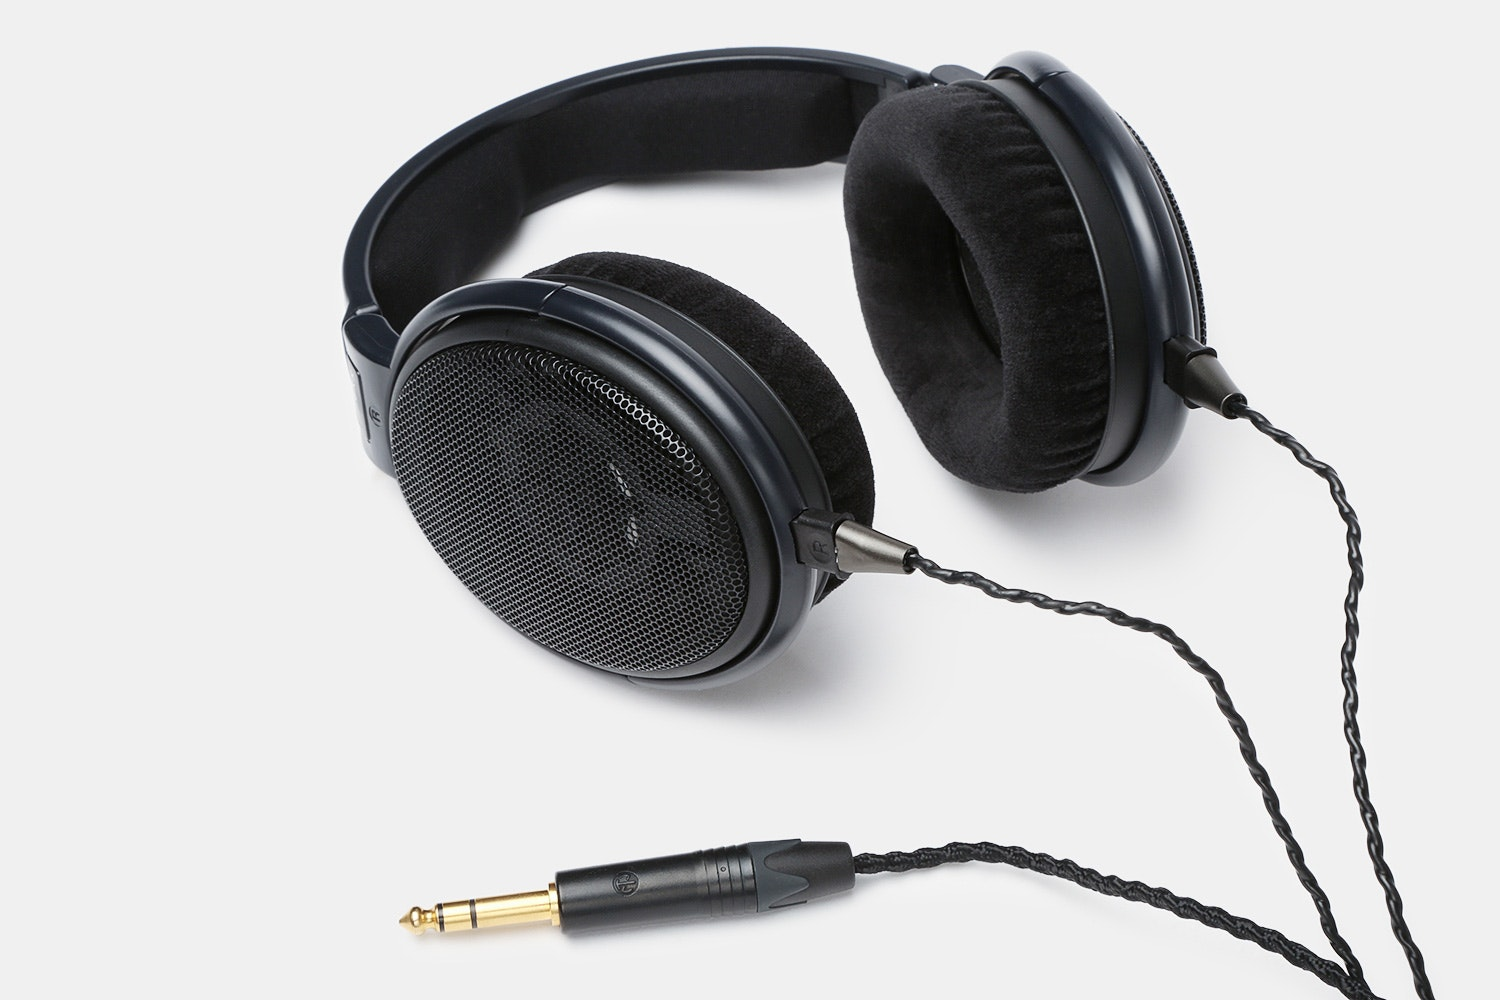 Fanmusic C6 Cables for HD 6XX Headphones & More